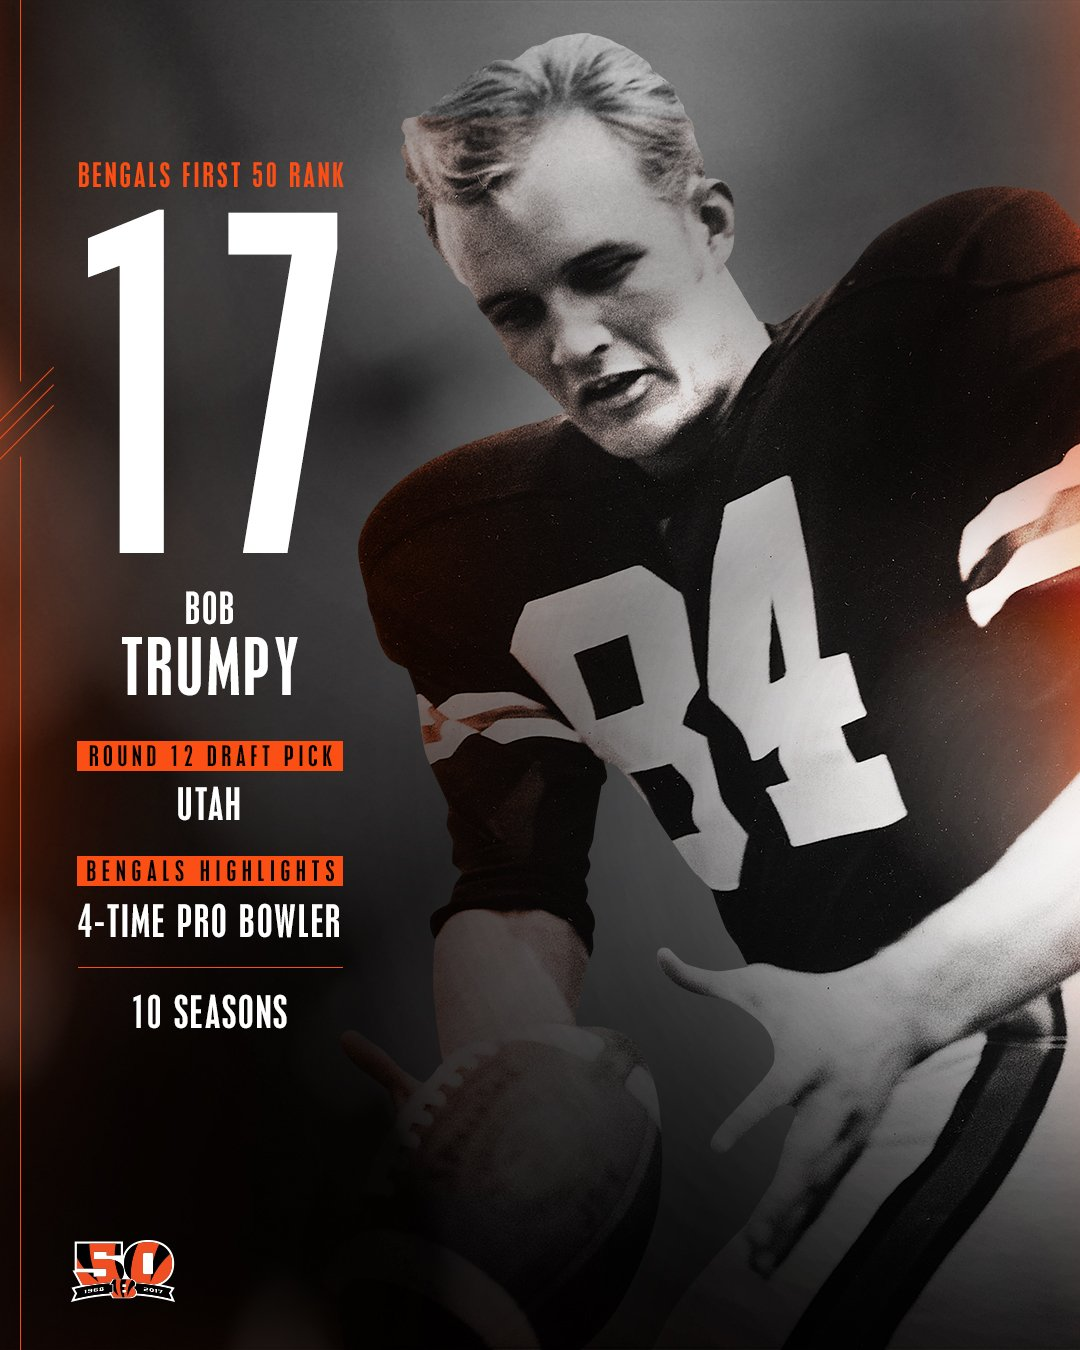 17 days until the kickoff of our home opener!  Number 17 on the #Bengals First 50: Bob Trumpy  #Bengals50 https://t.co/78M2Jcvgt5